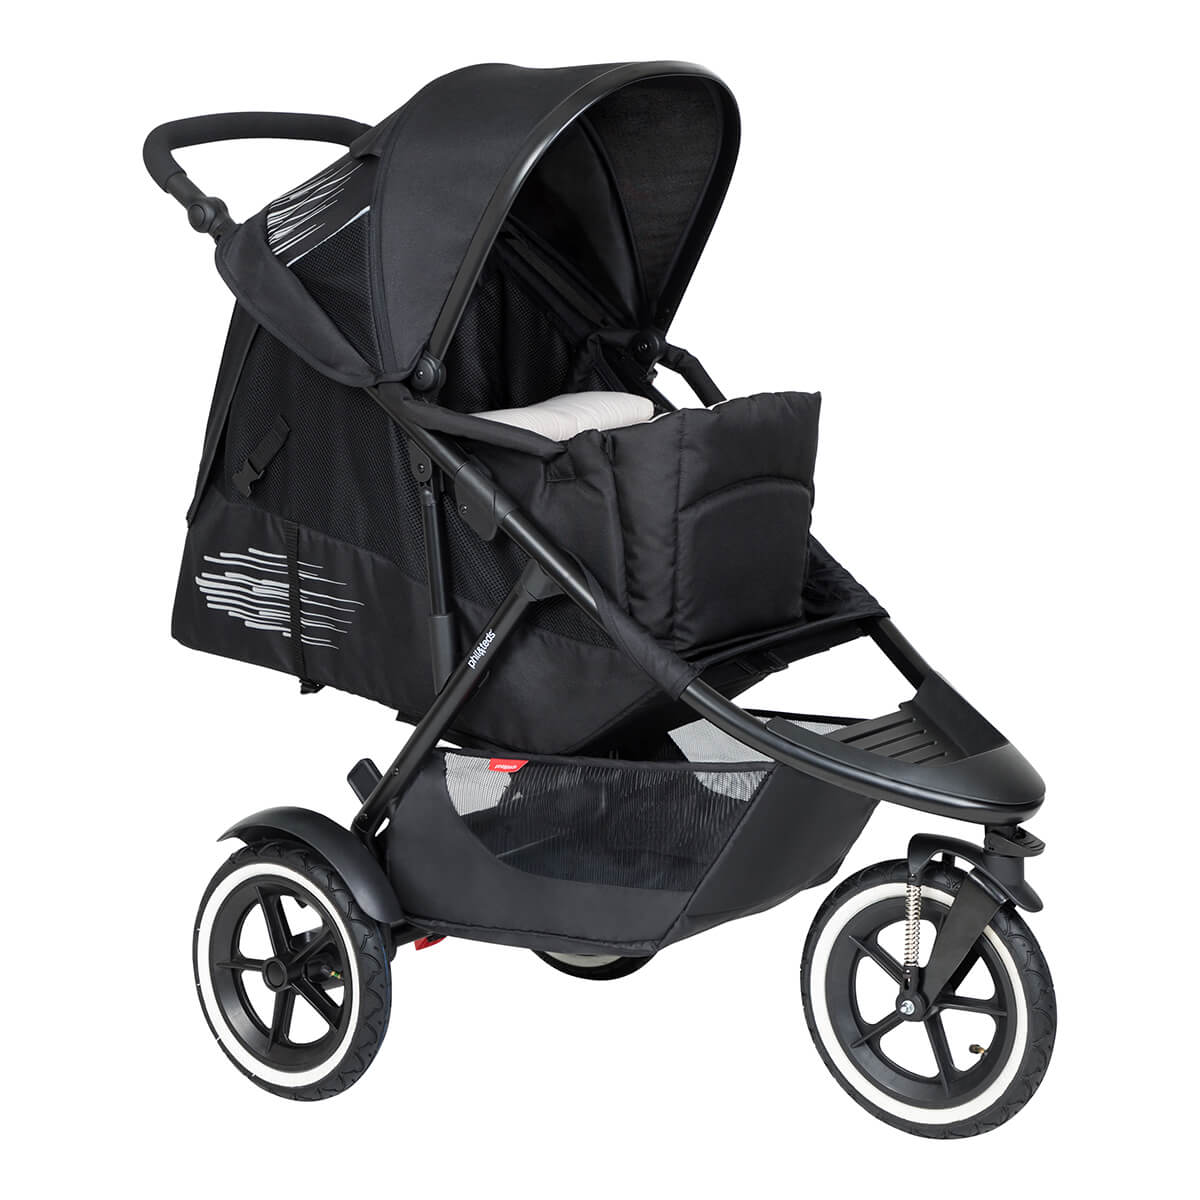 https://cdn.accentuate.io/4513463369824/19440099360952/philteds-sport-buggy-with-cocoon-full-recline-v1626486644827.jpg?1200x1200